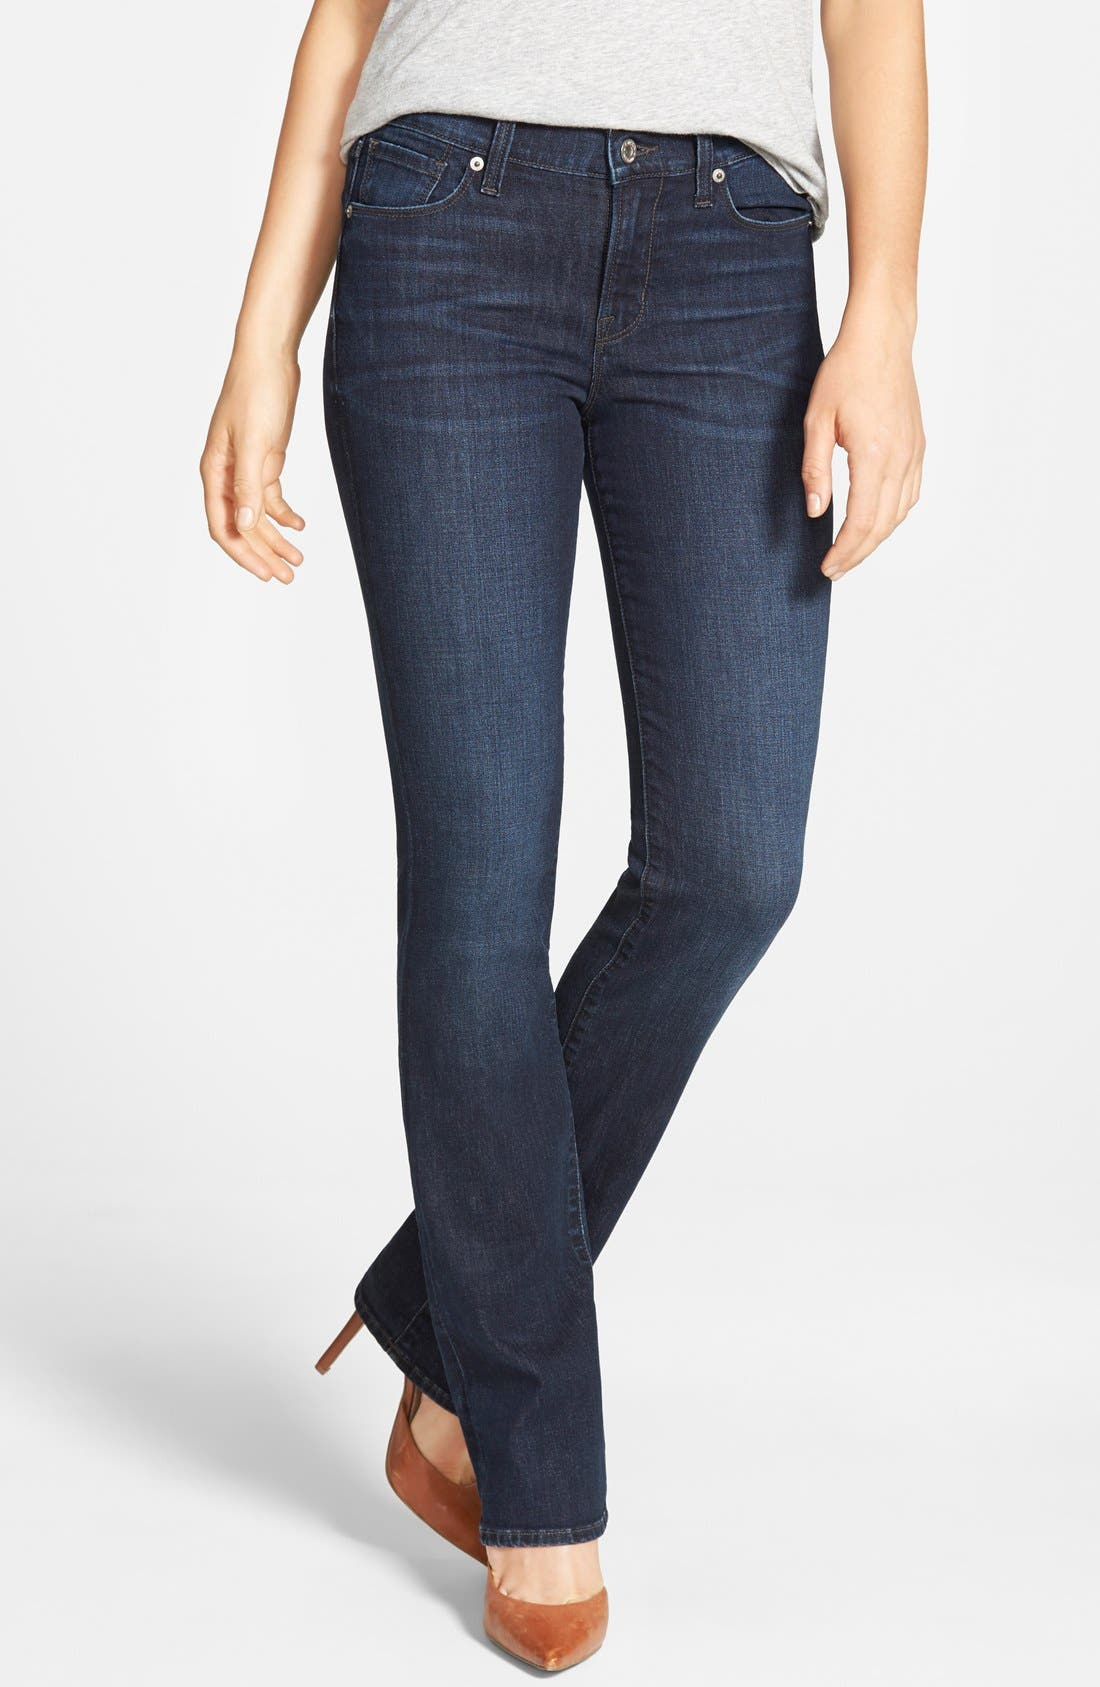 Alternate Image 1 Selected - Lucky Brand 'Brooke' Stretch Bootcut Jeans (Serpantine)